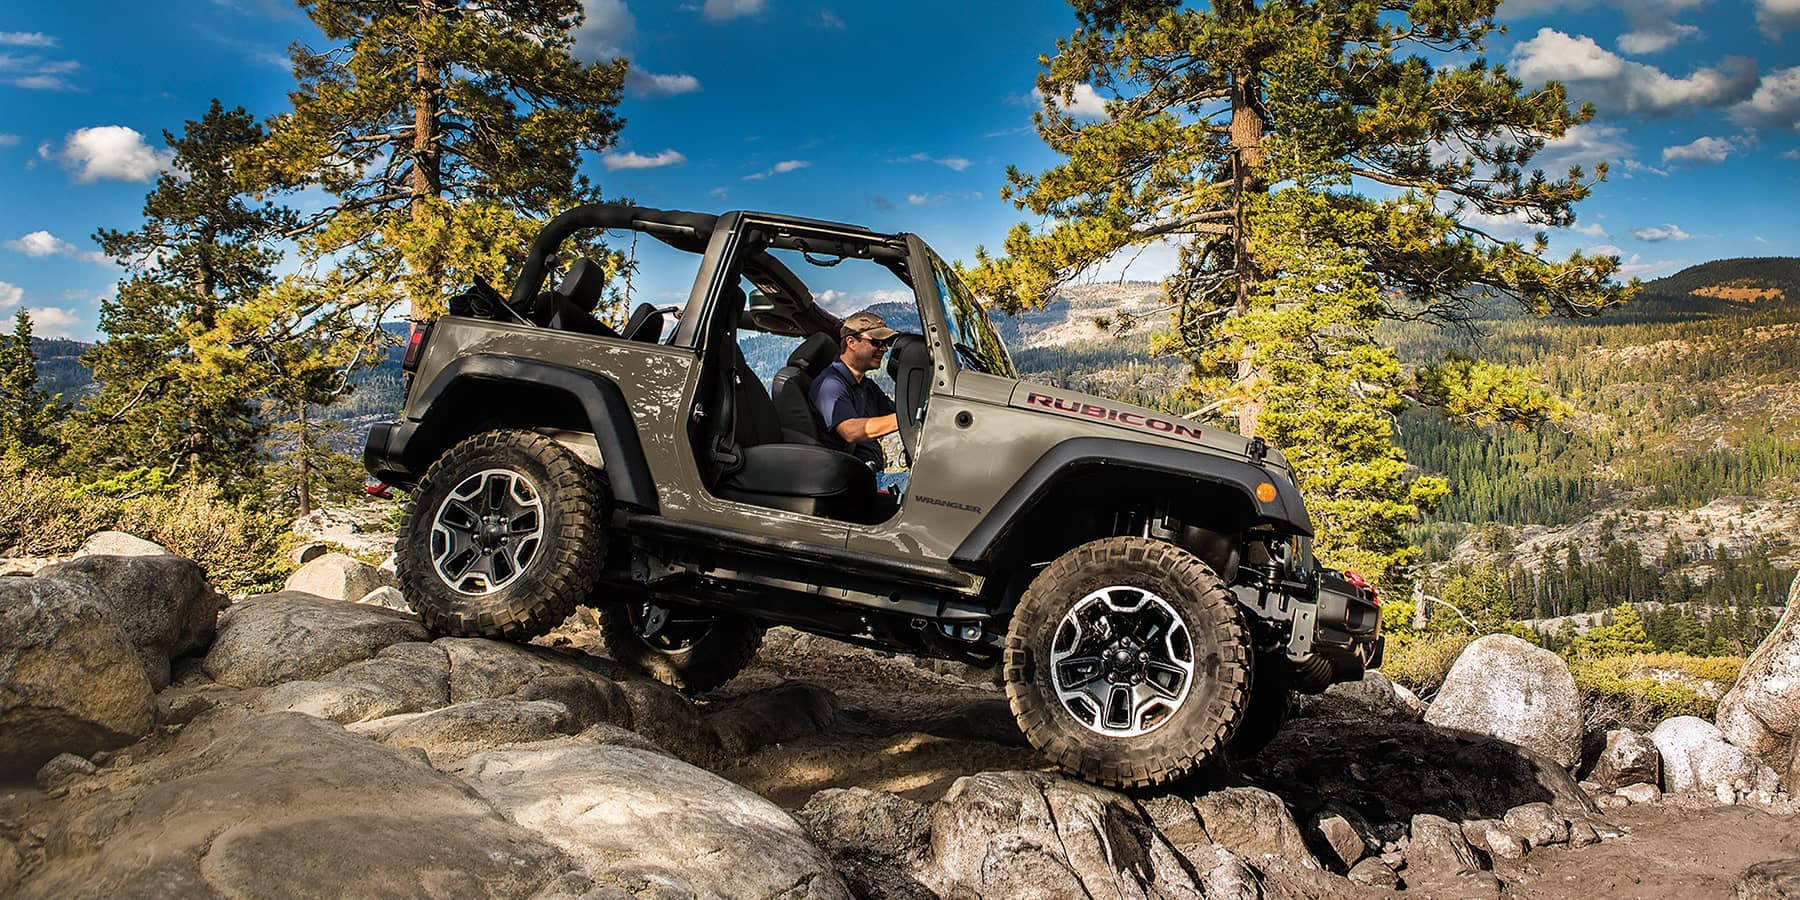 2017-Jeep-Wrangler-Gallery-Capability-Offroad-Boulders.jpg.image.2880